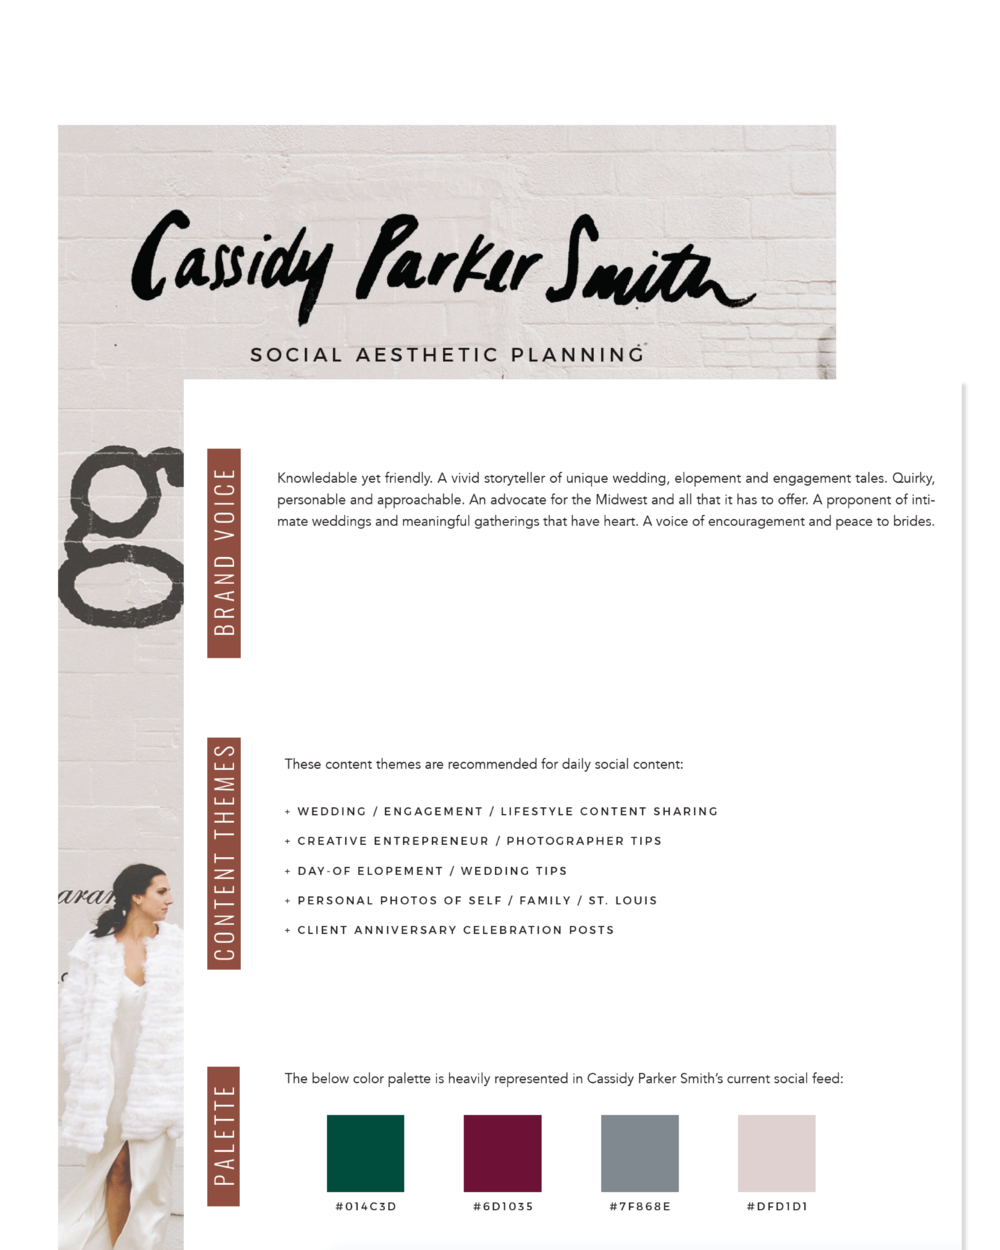 Lindsay Scholz | Cassidy Parker Smith Social Aesthetic Planning Case Study